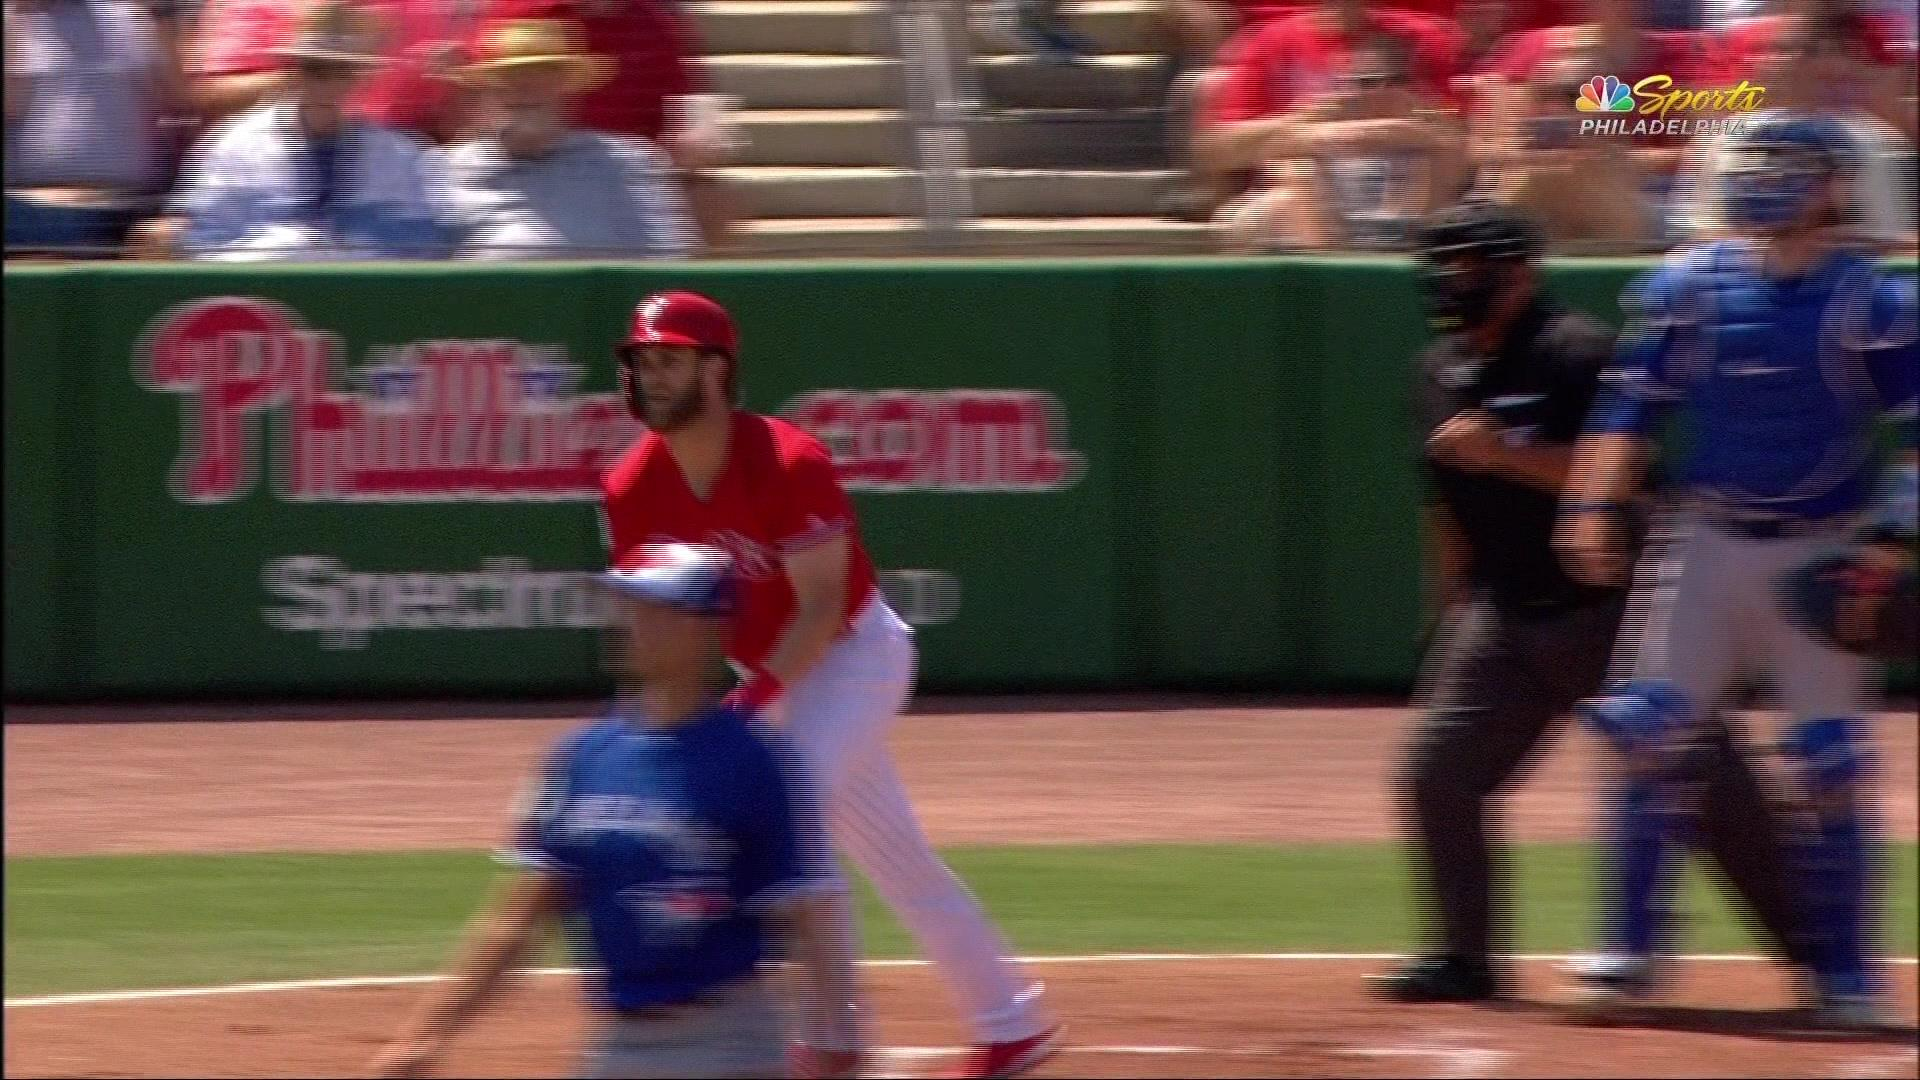 Bryce Harper smashes his first home run as a Philadelphia Phillie